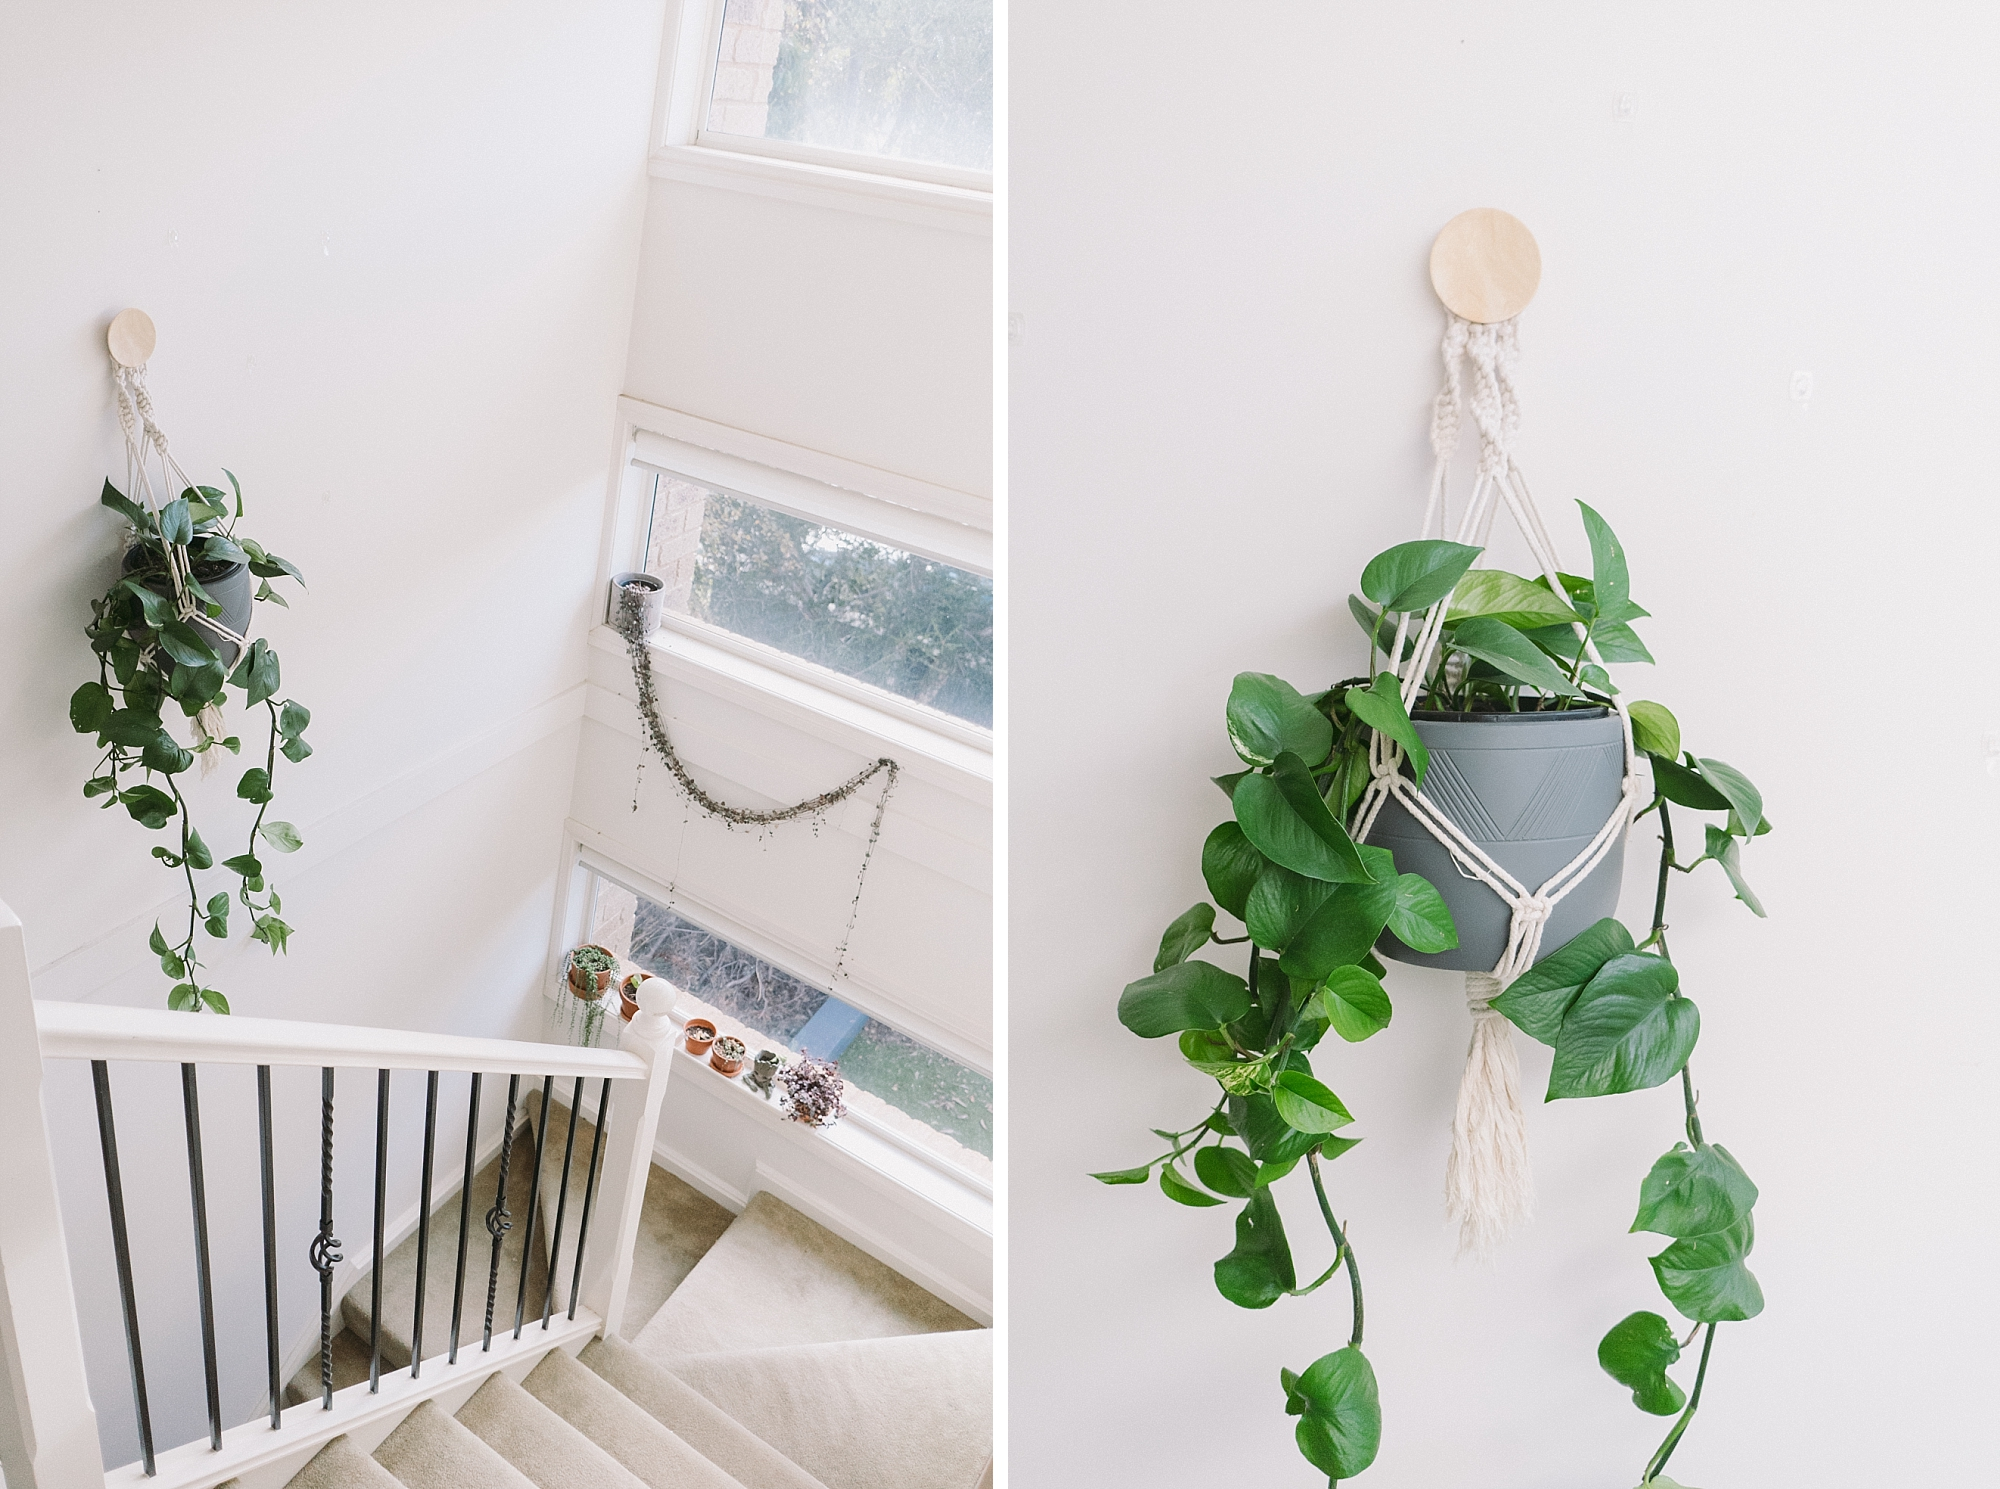 The new plant hanging in the staircase (a Jade Ivy).